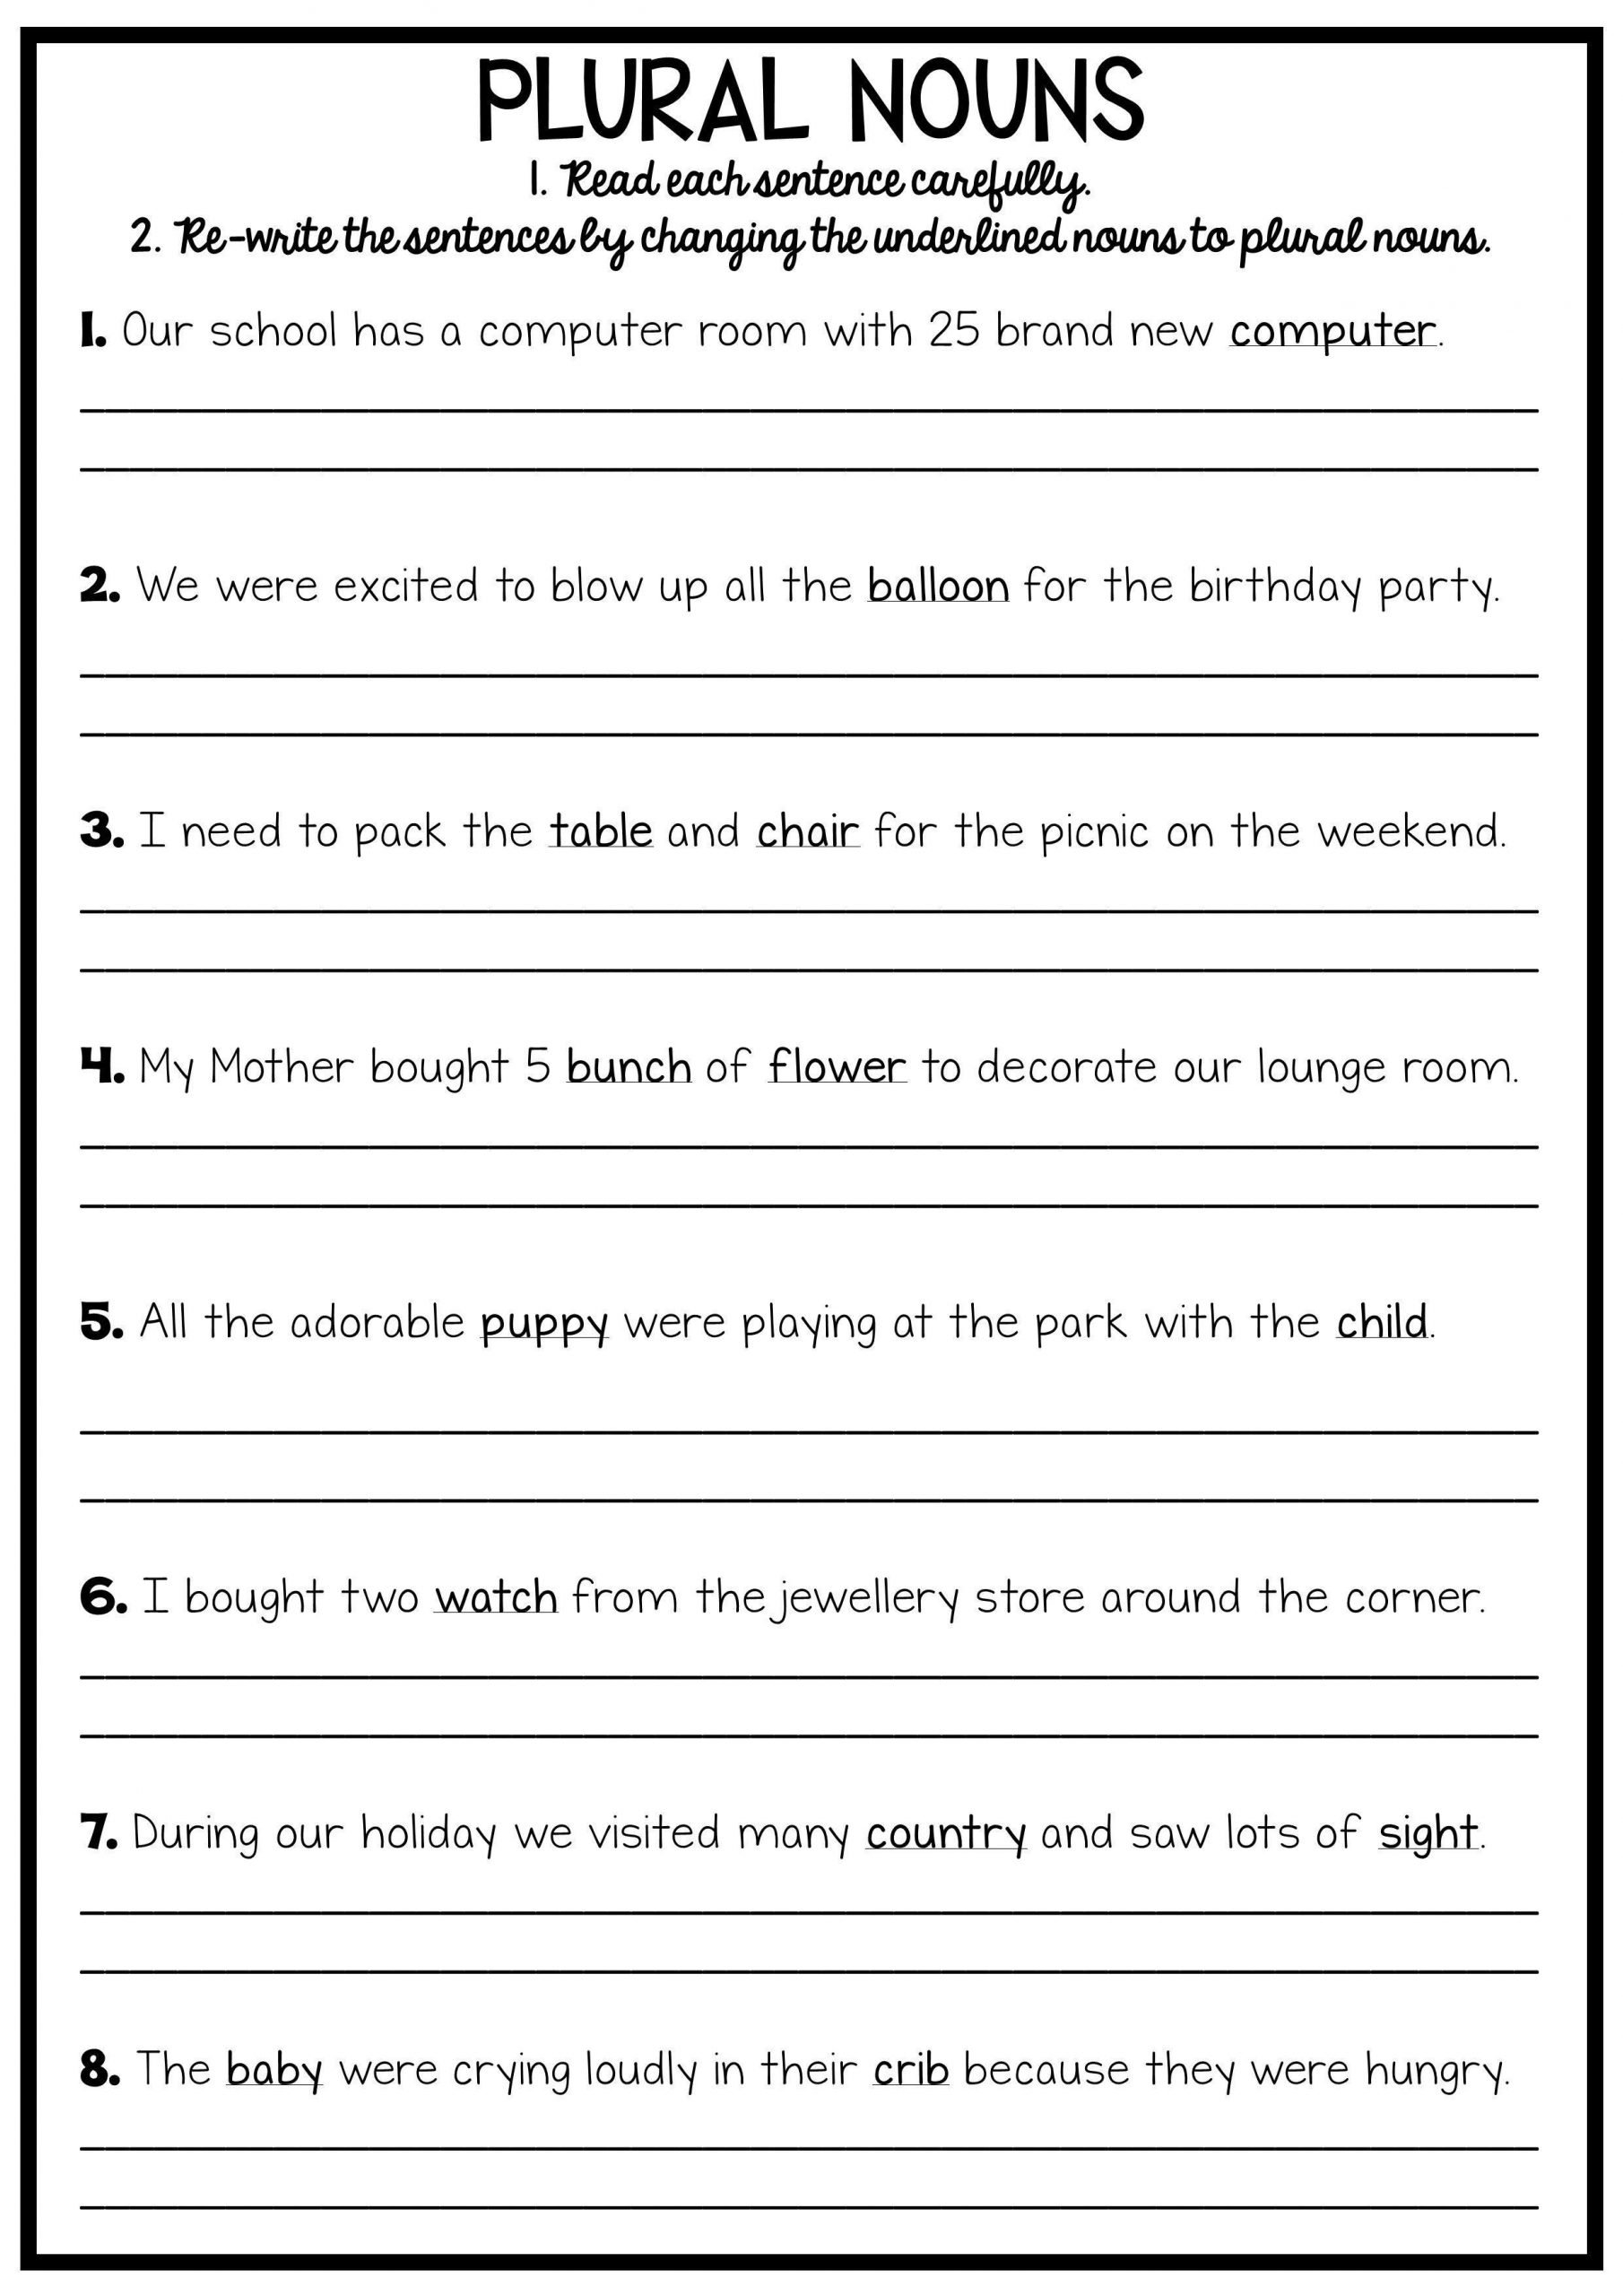 Complete Sentence Worksheet 3rd Grade Legal Summarizing Worksheets 3rd Grade